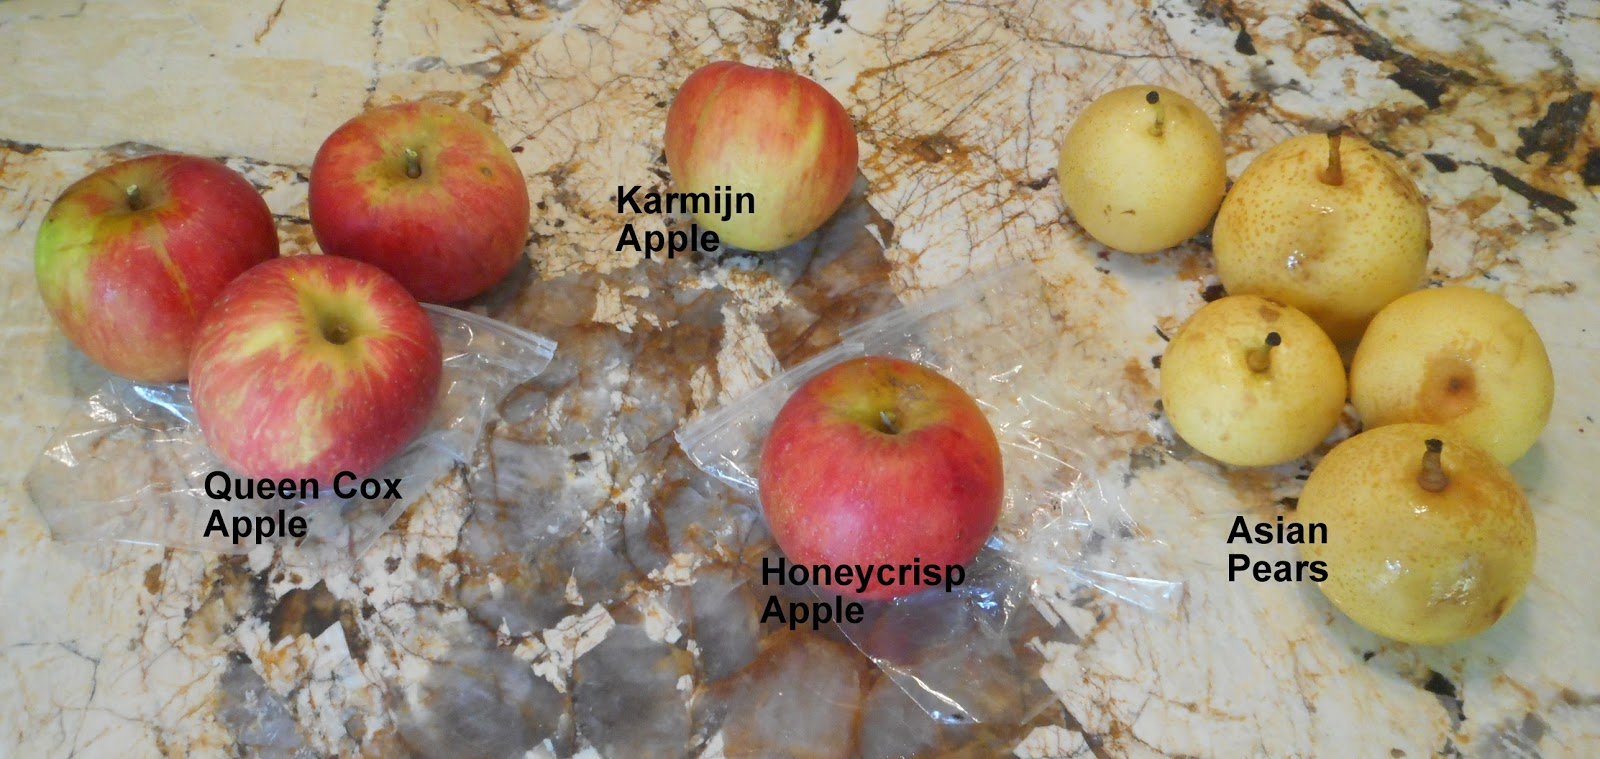 how to make apples ripen faster